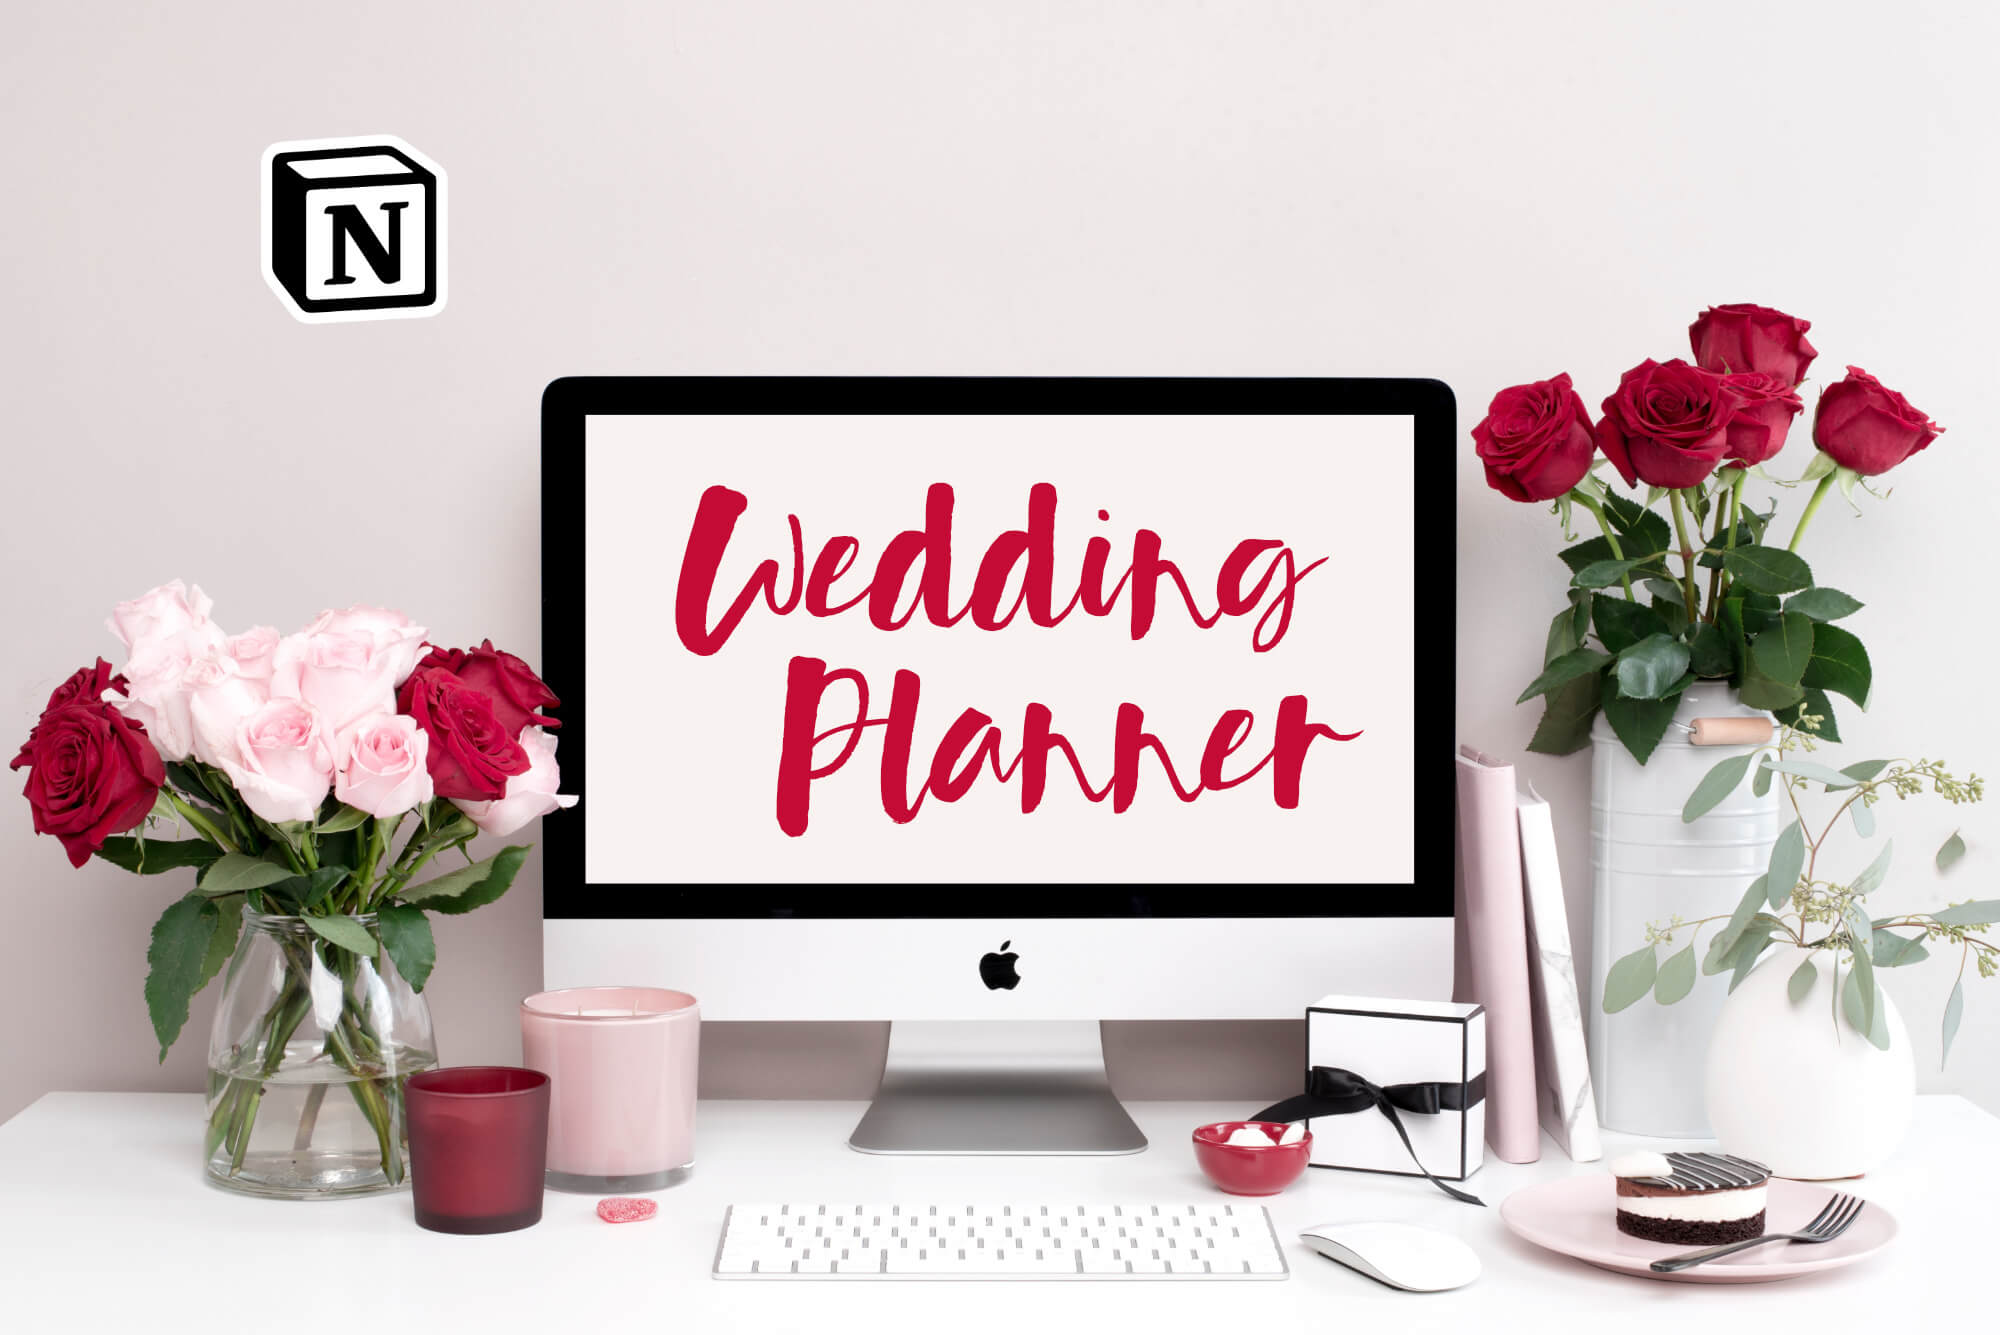 The Notion Wedding Planner - Couples Edition